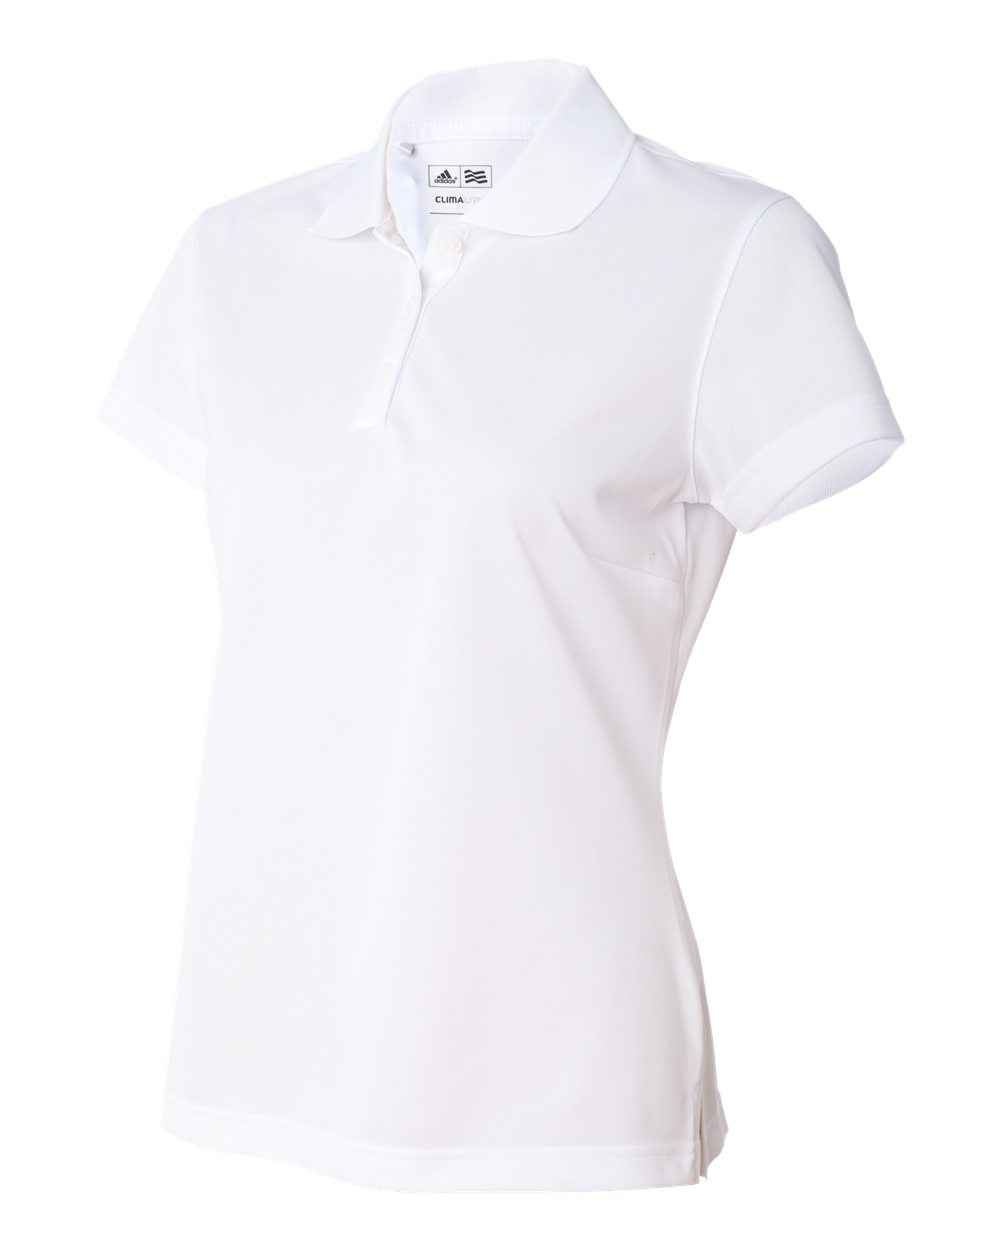 adidas climalite cotton polo shirt